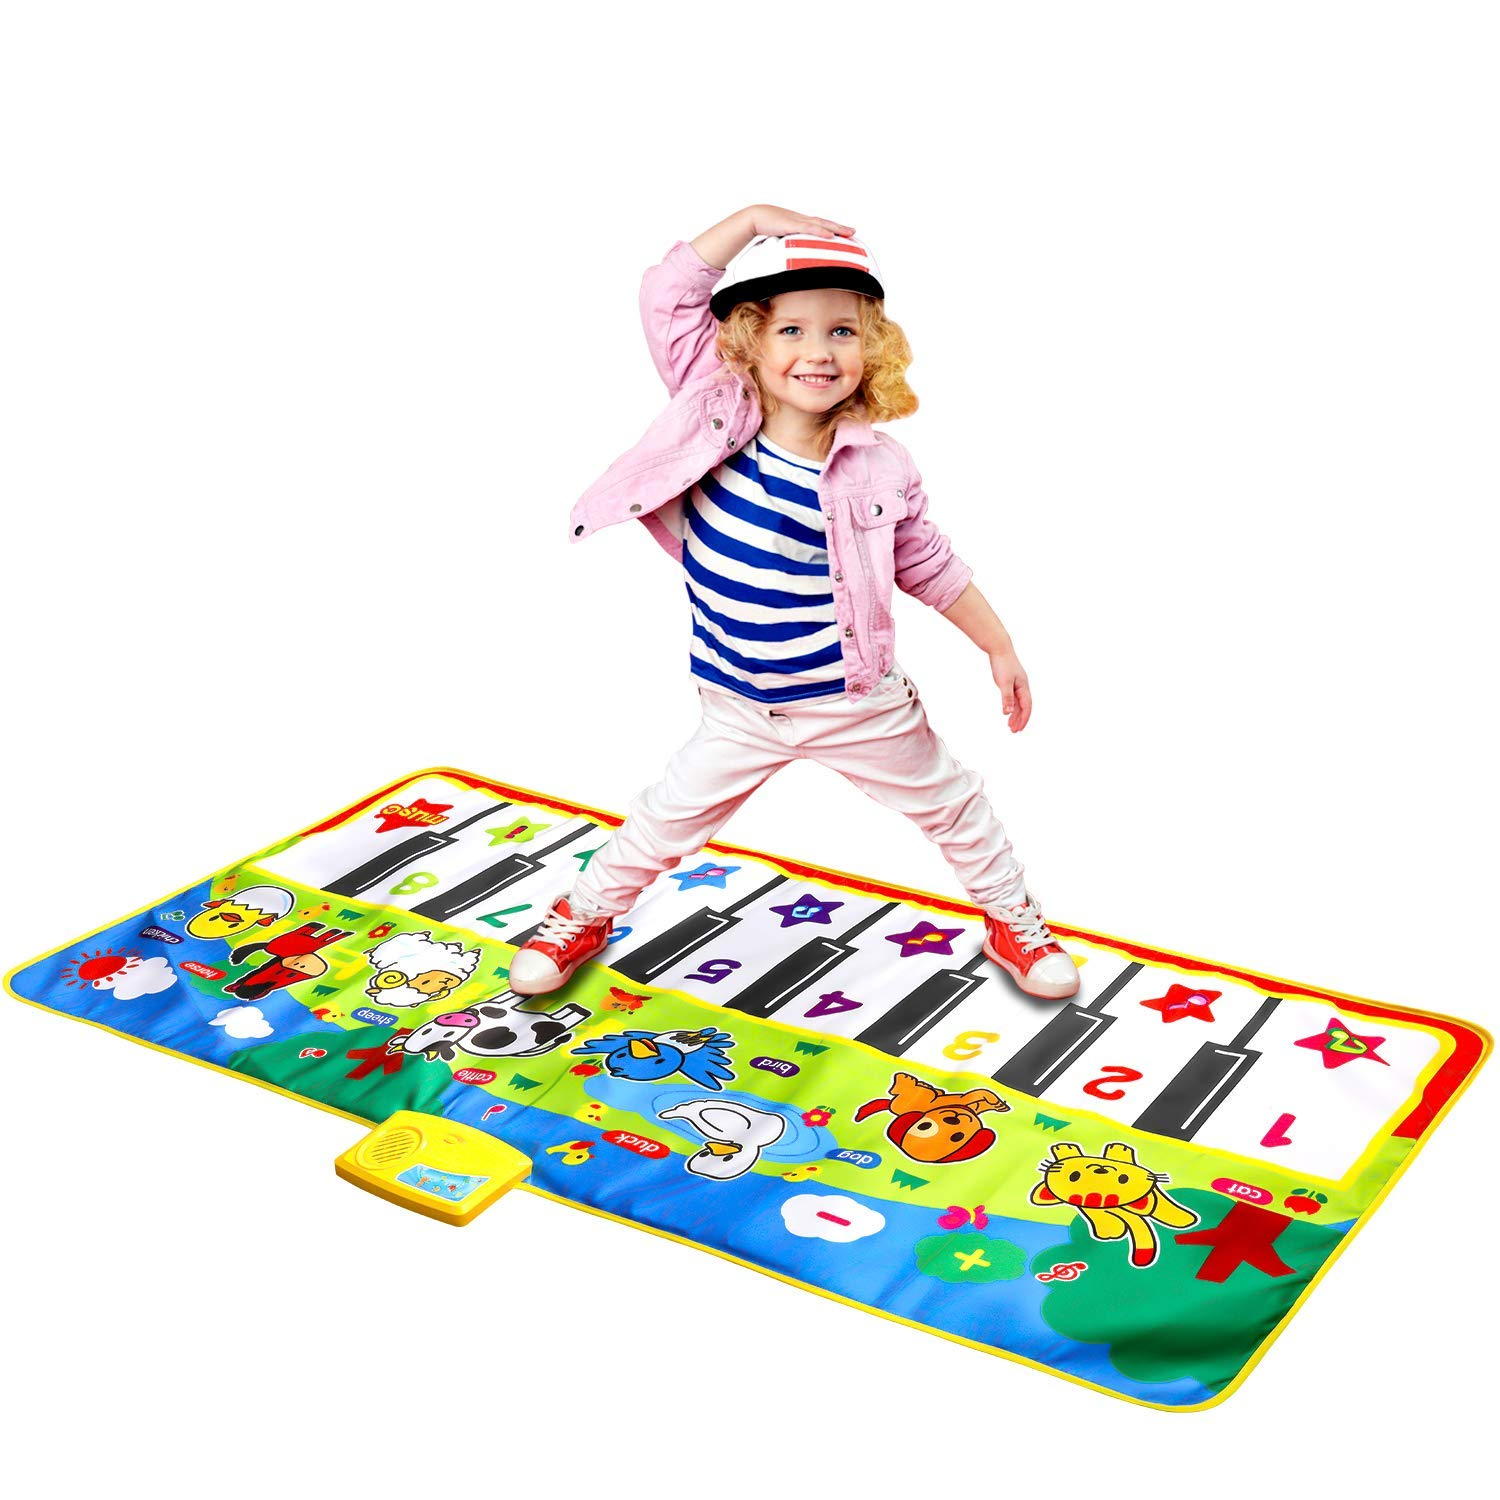 Joyfia Piano Mat, 53.2'' Electronic Music Piano Keyboard Carpet Animal Blanket Touch Dance Play Mat Toys, Baby Early Education Gifts for Kids Toddler Infant Boys Girls by Joyfia (Image #1)